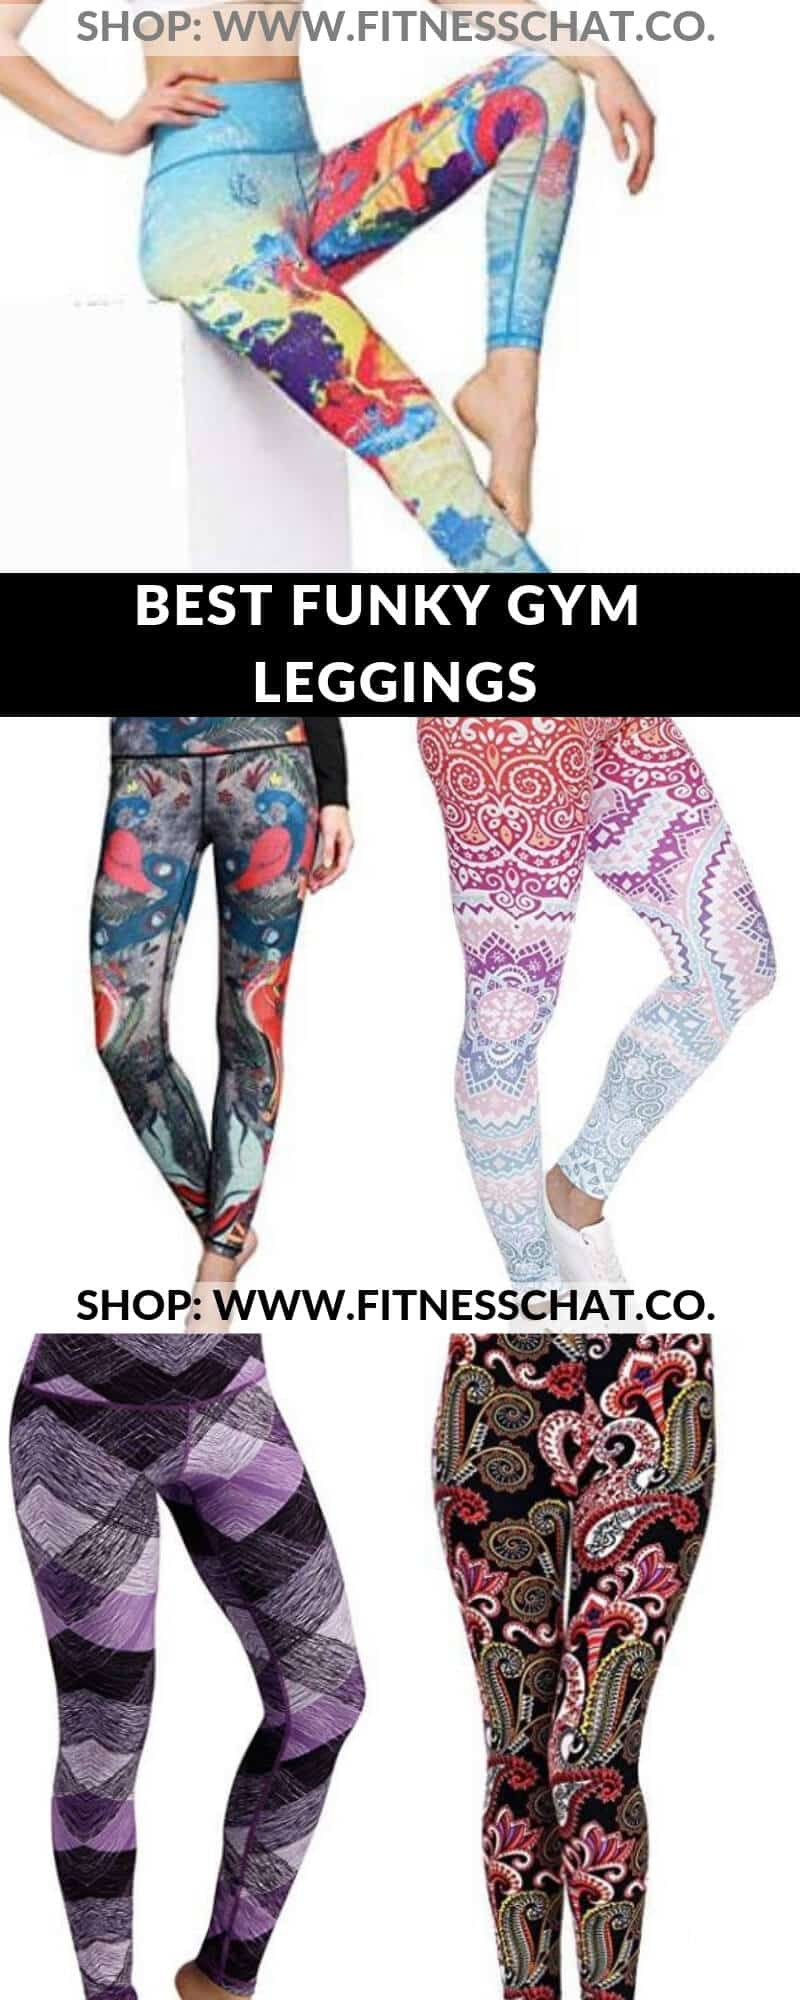 Funky Gym Leggings That'll Make You Want to Hit the Gym